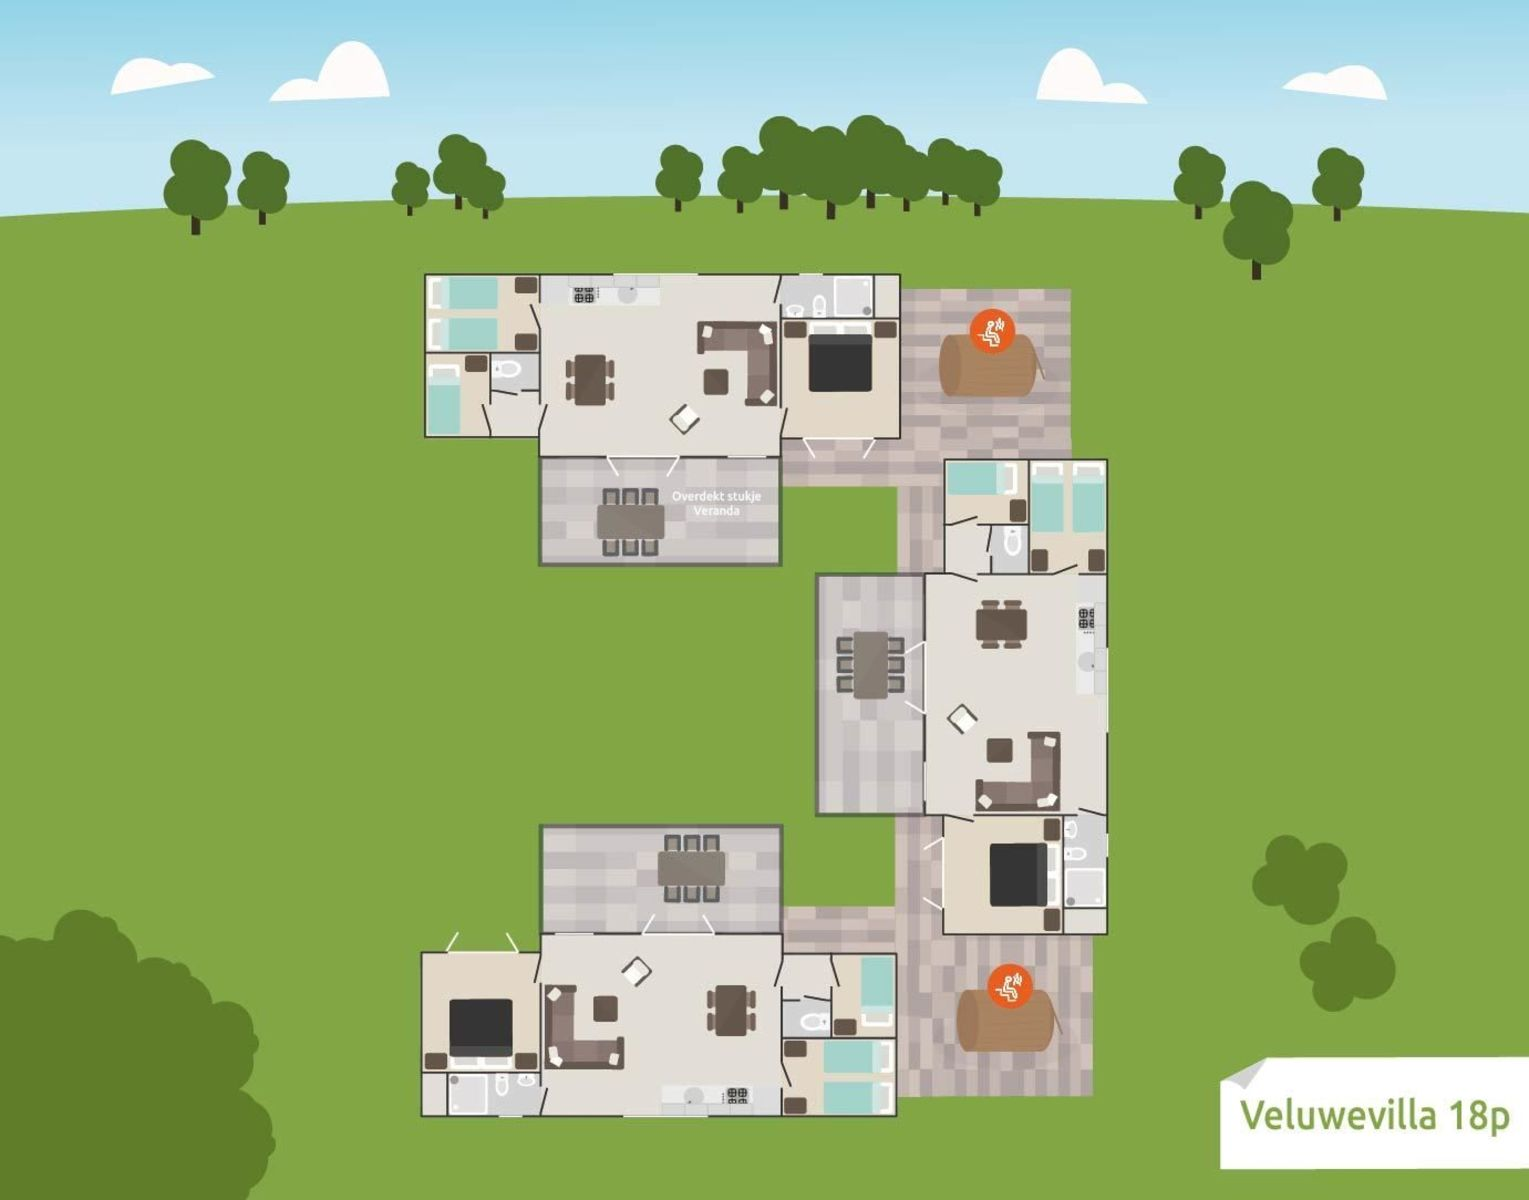 18-person Veluwe Villa district